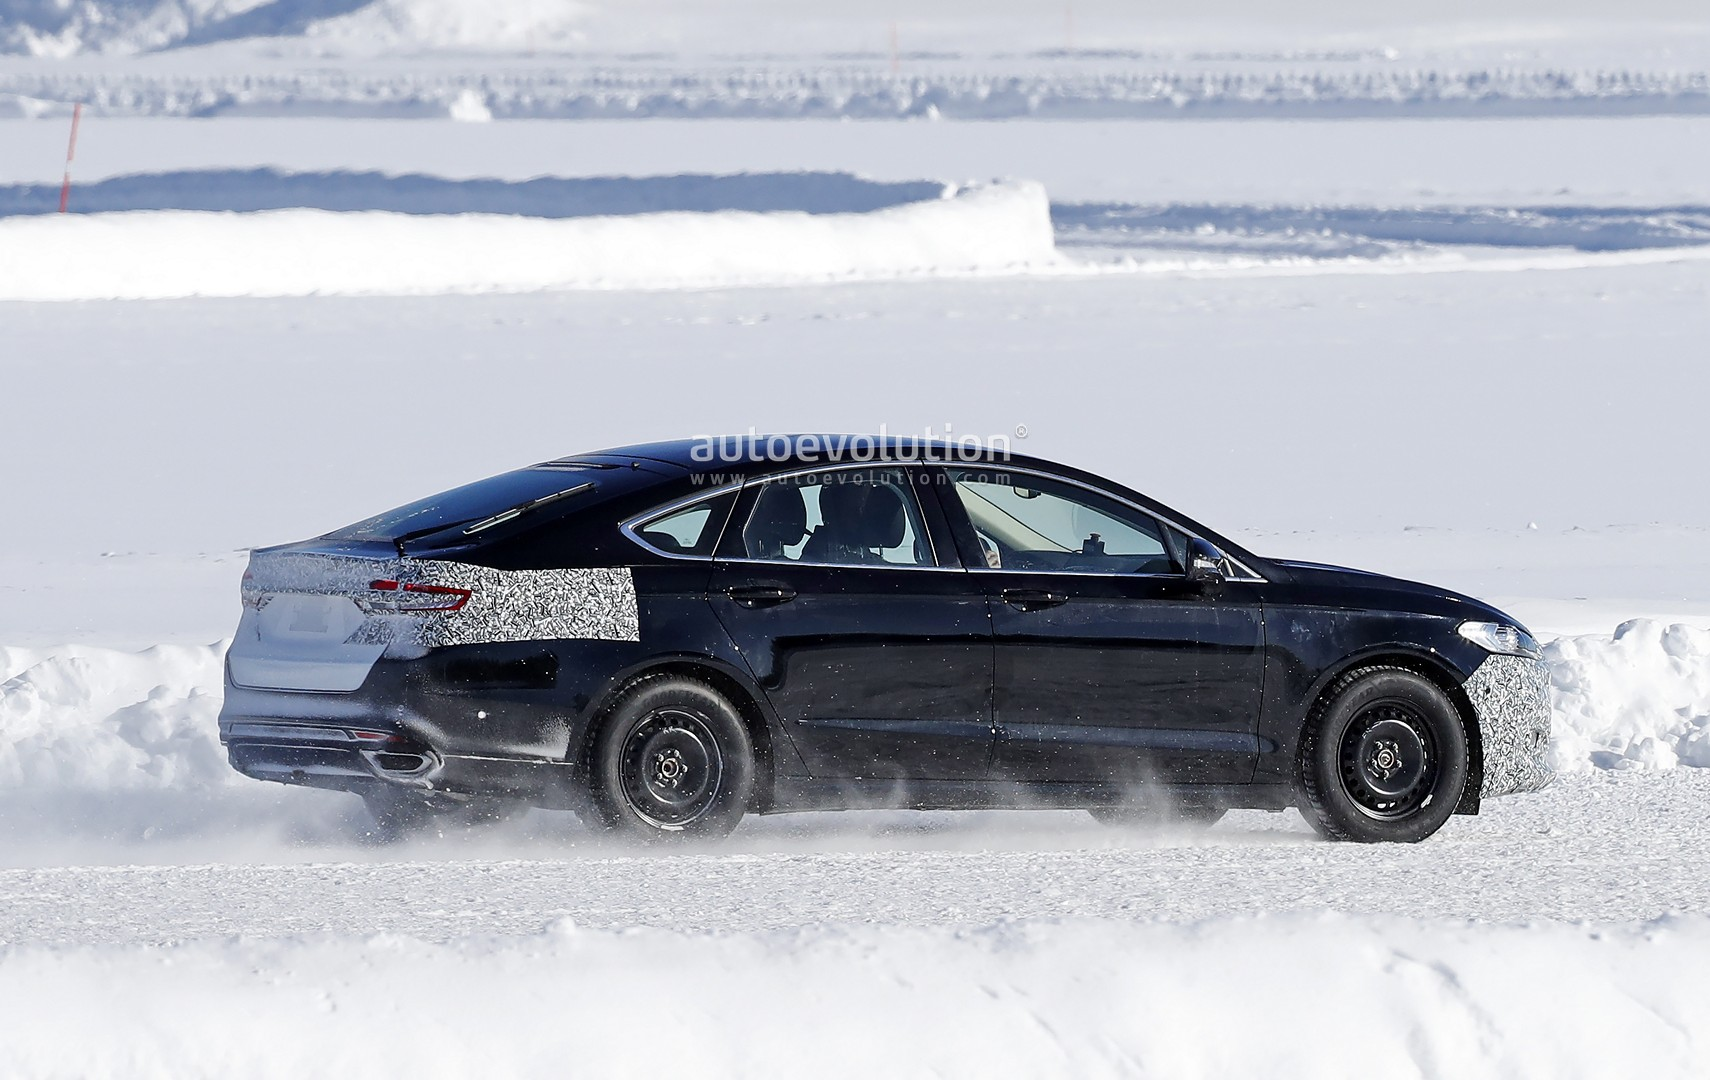 2018 Mondeo Facelift >> 2019 Ford Mondeo Facelift Spied for the First Time in Sweden - autoevolution